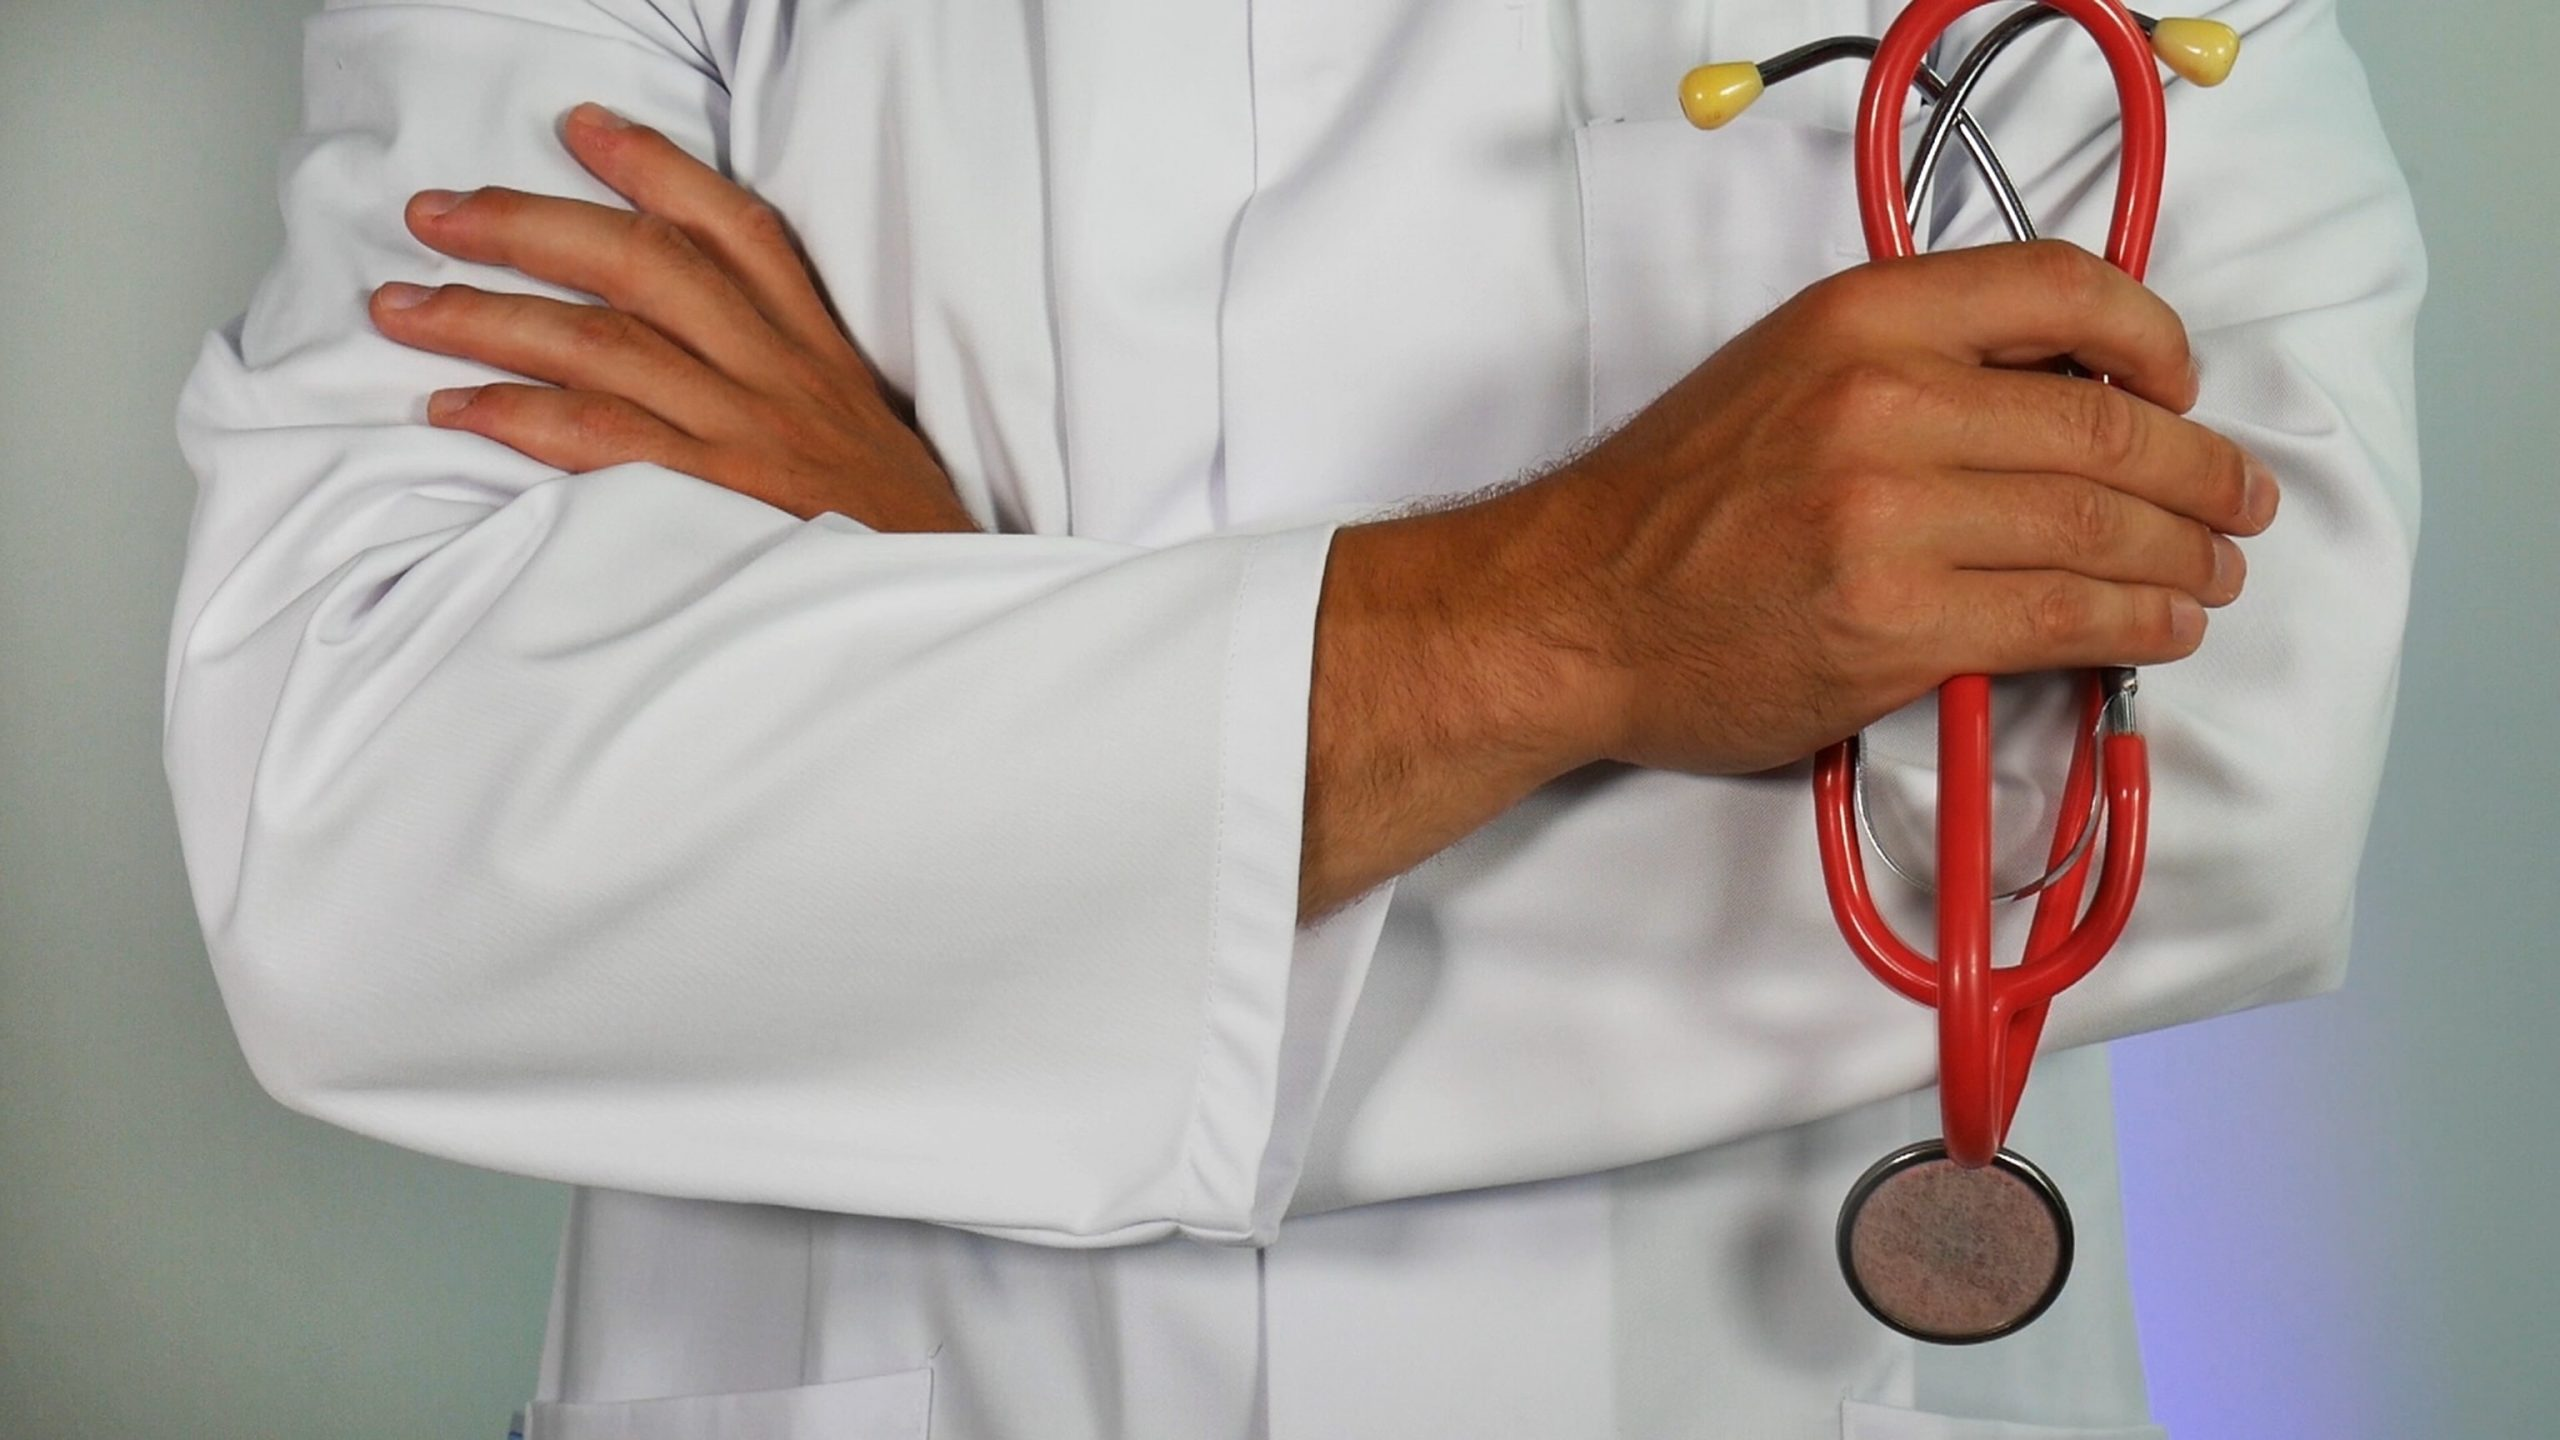 doctor holding a red stethoscope